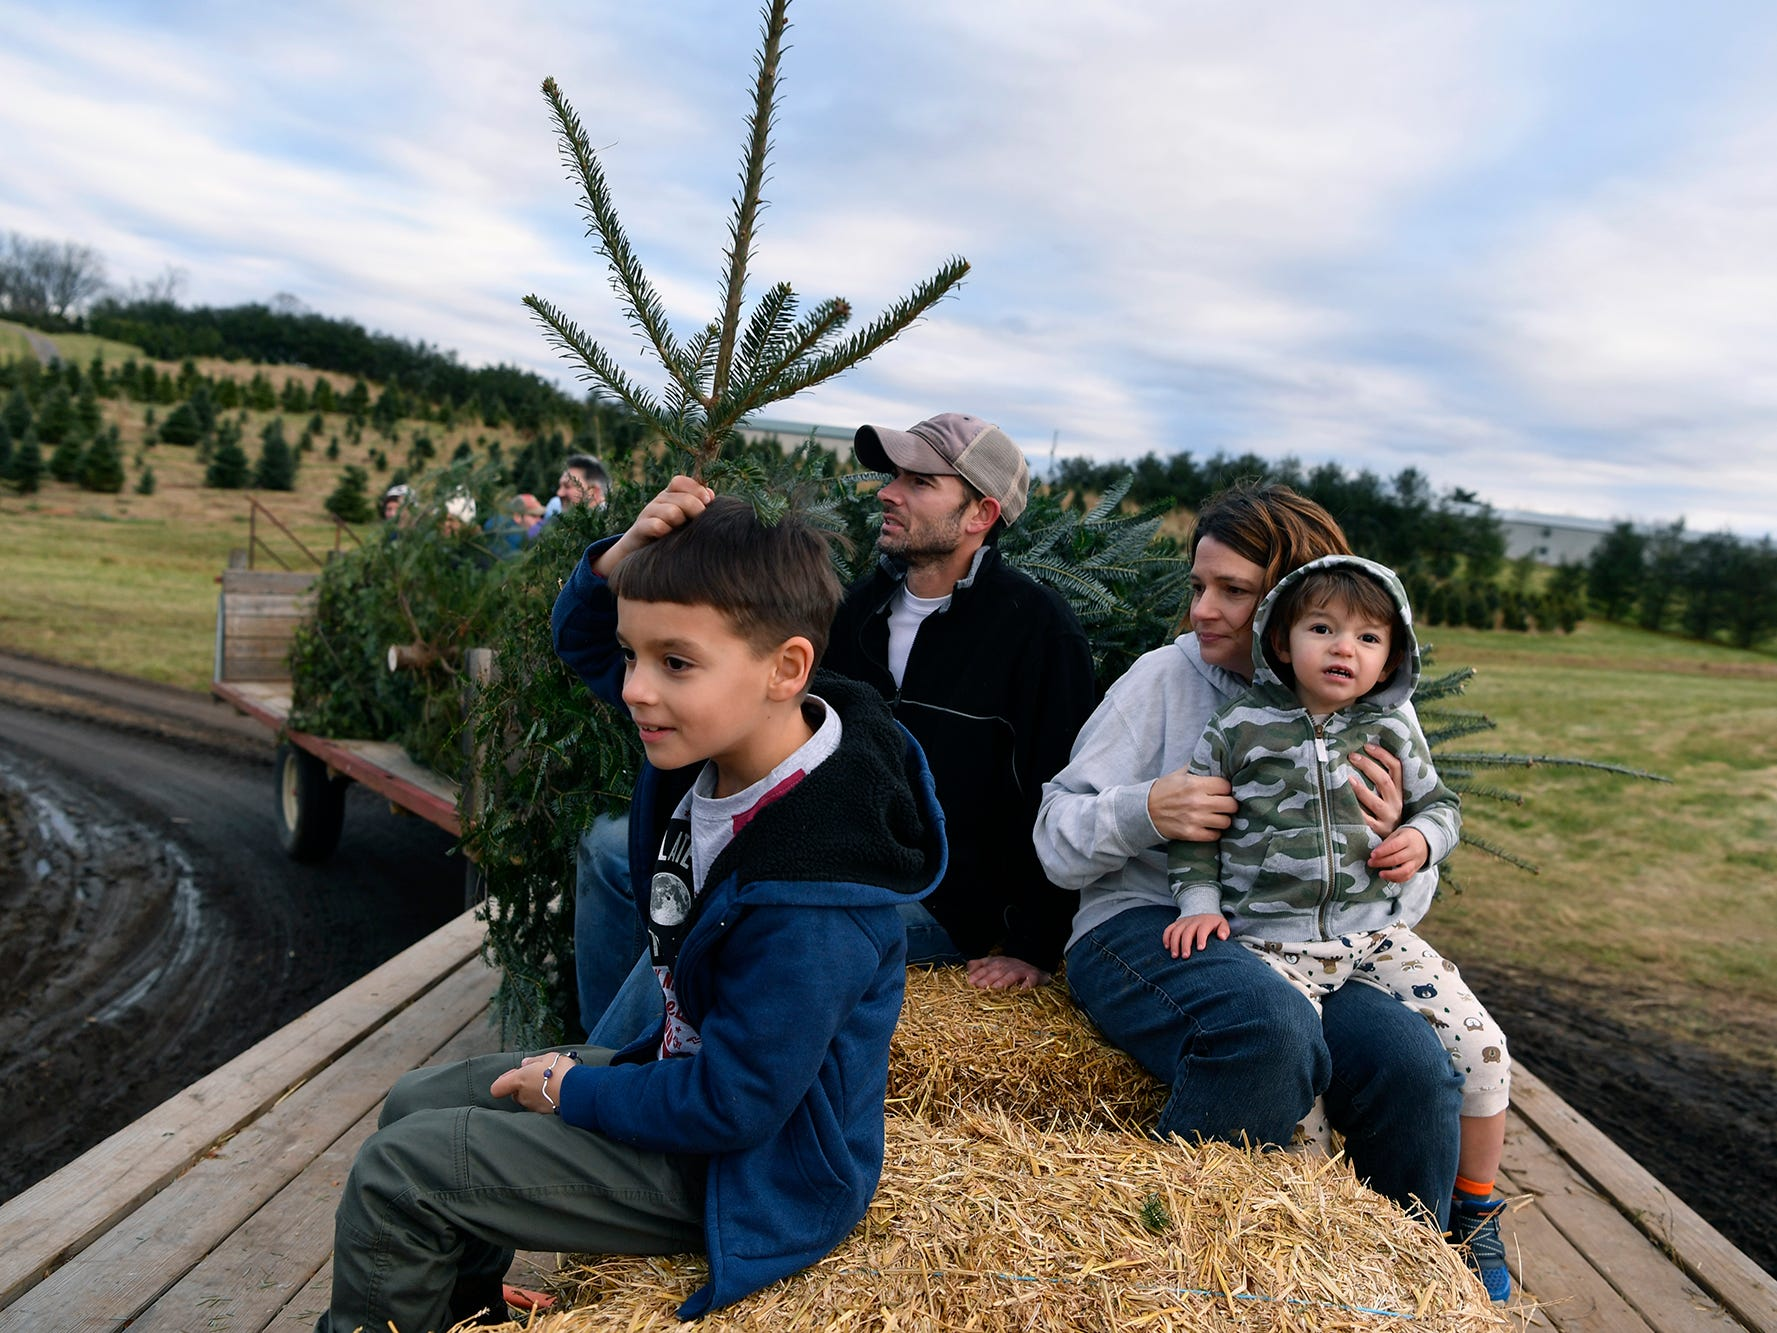 River Kuykendall, 7, left, makes himself into a tree as he and his family, father Brandon, mother Kerri and brother Tristan, 2, ride the tractor back with their freshly cut Christmas tree at  McCurdy's Tree Farm in Dillsburg  December 3, 2018. 